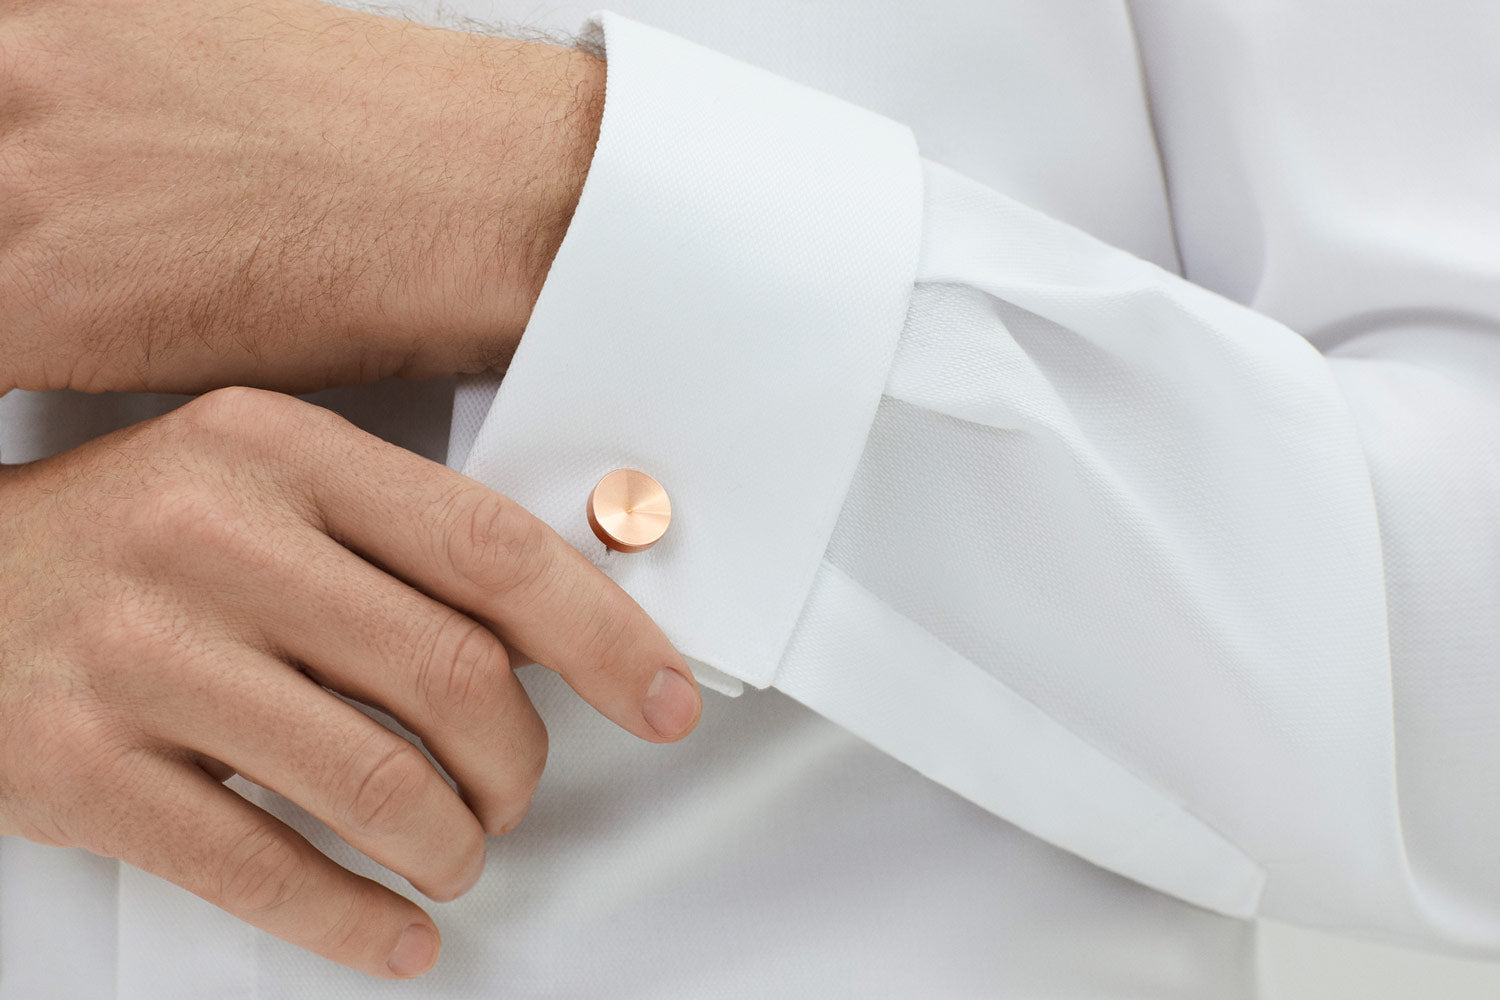 copper cufflinks for work | Alice Made This